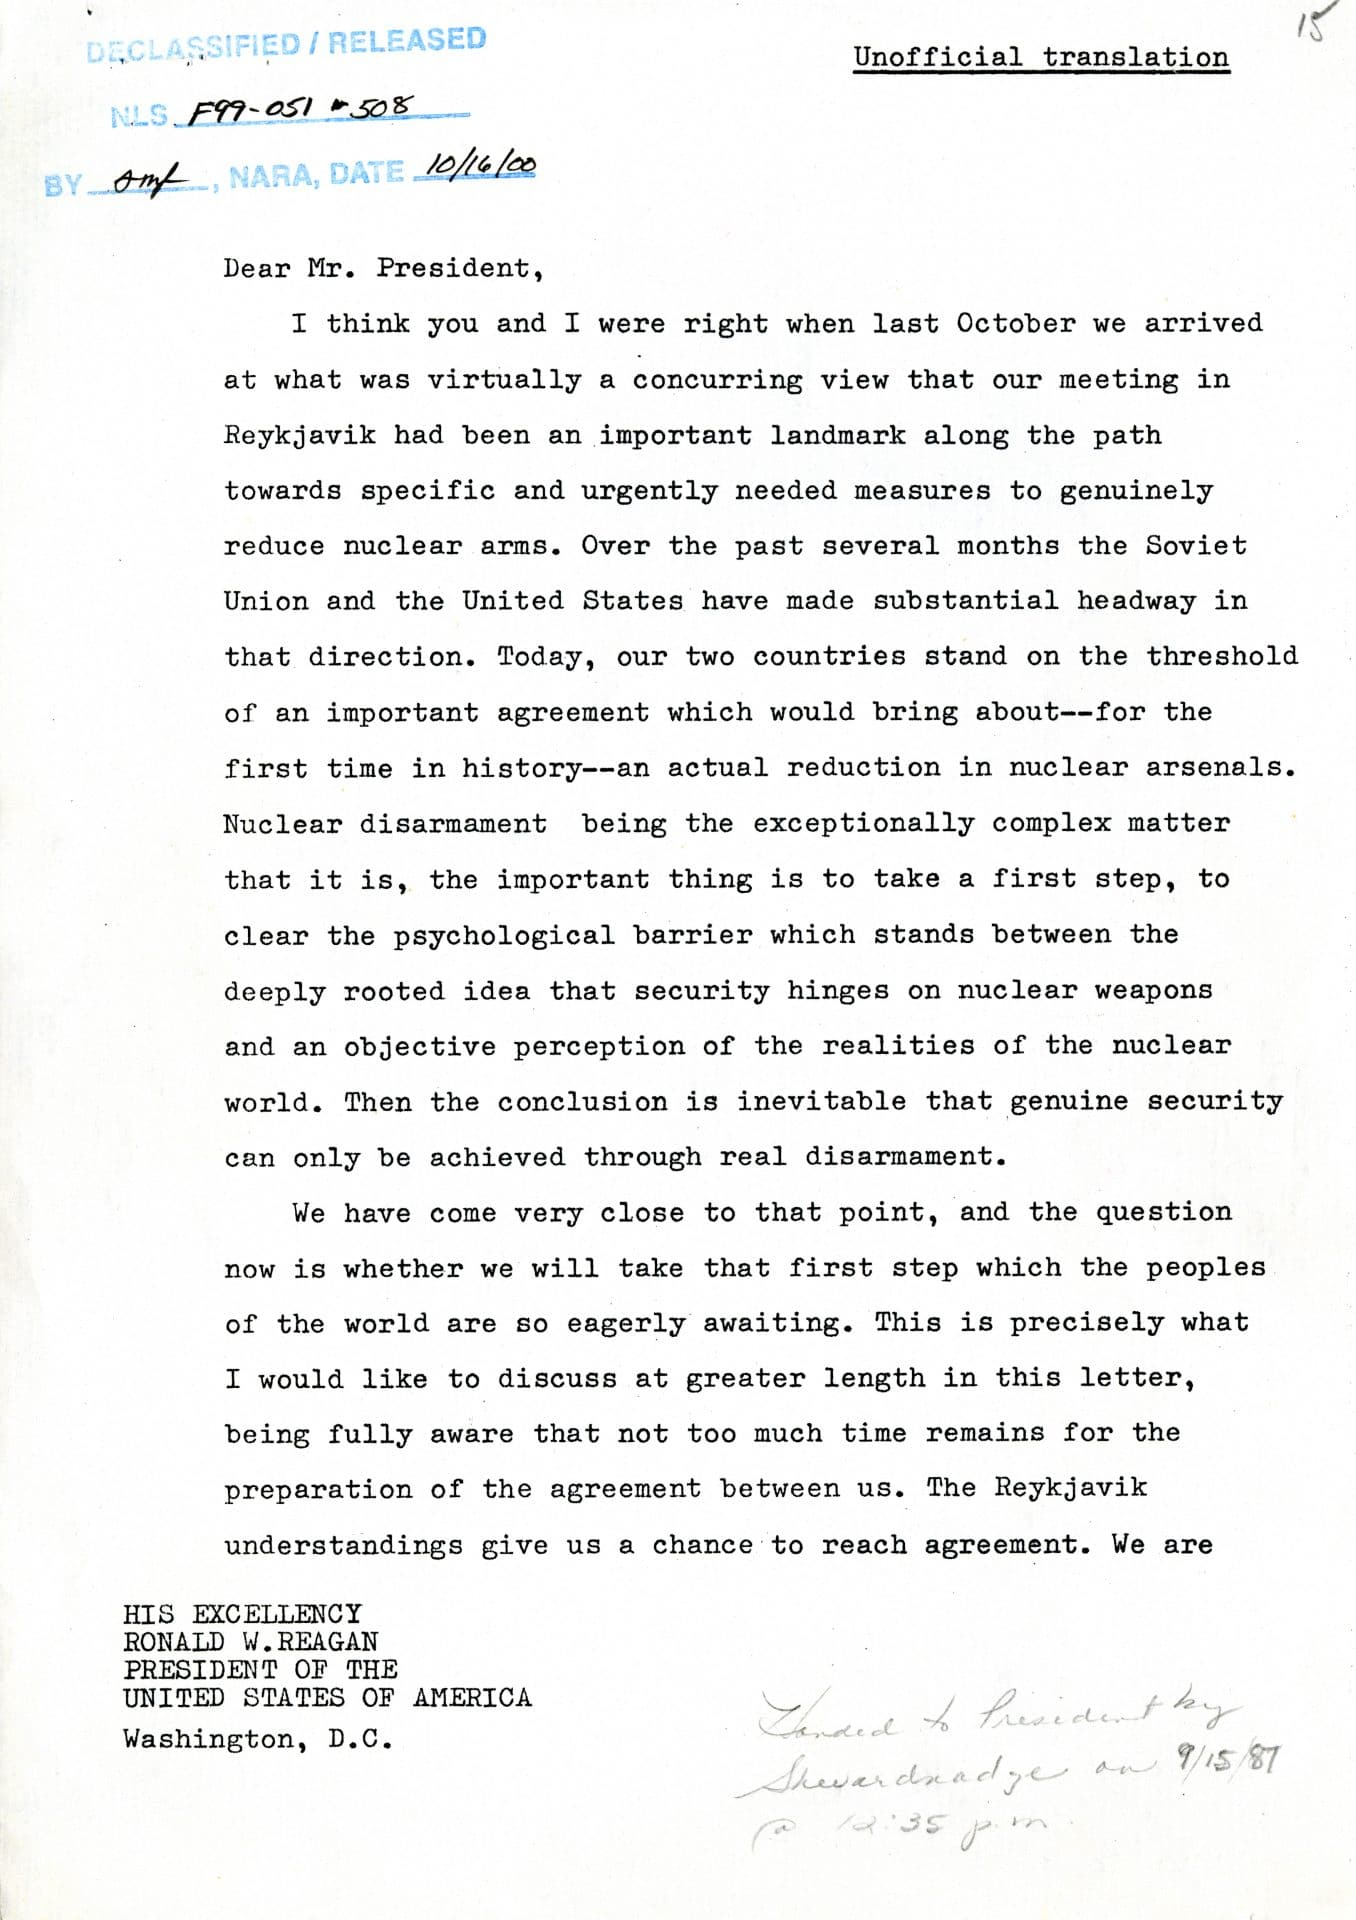 Excerpts of May 1986 Reagan Letter from Gorbachev / courtesy of the Ronald Reagan Library